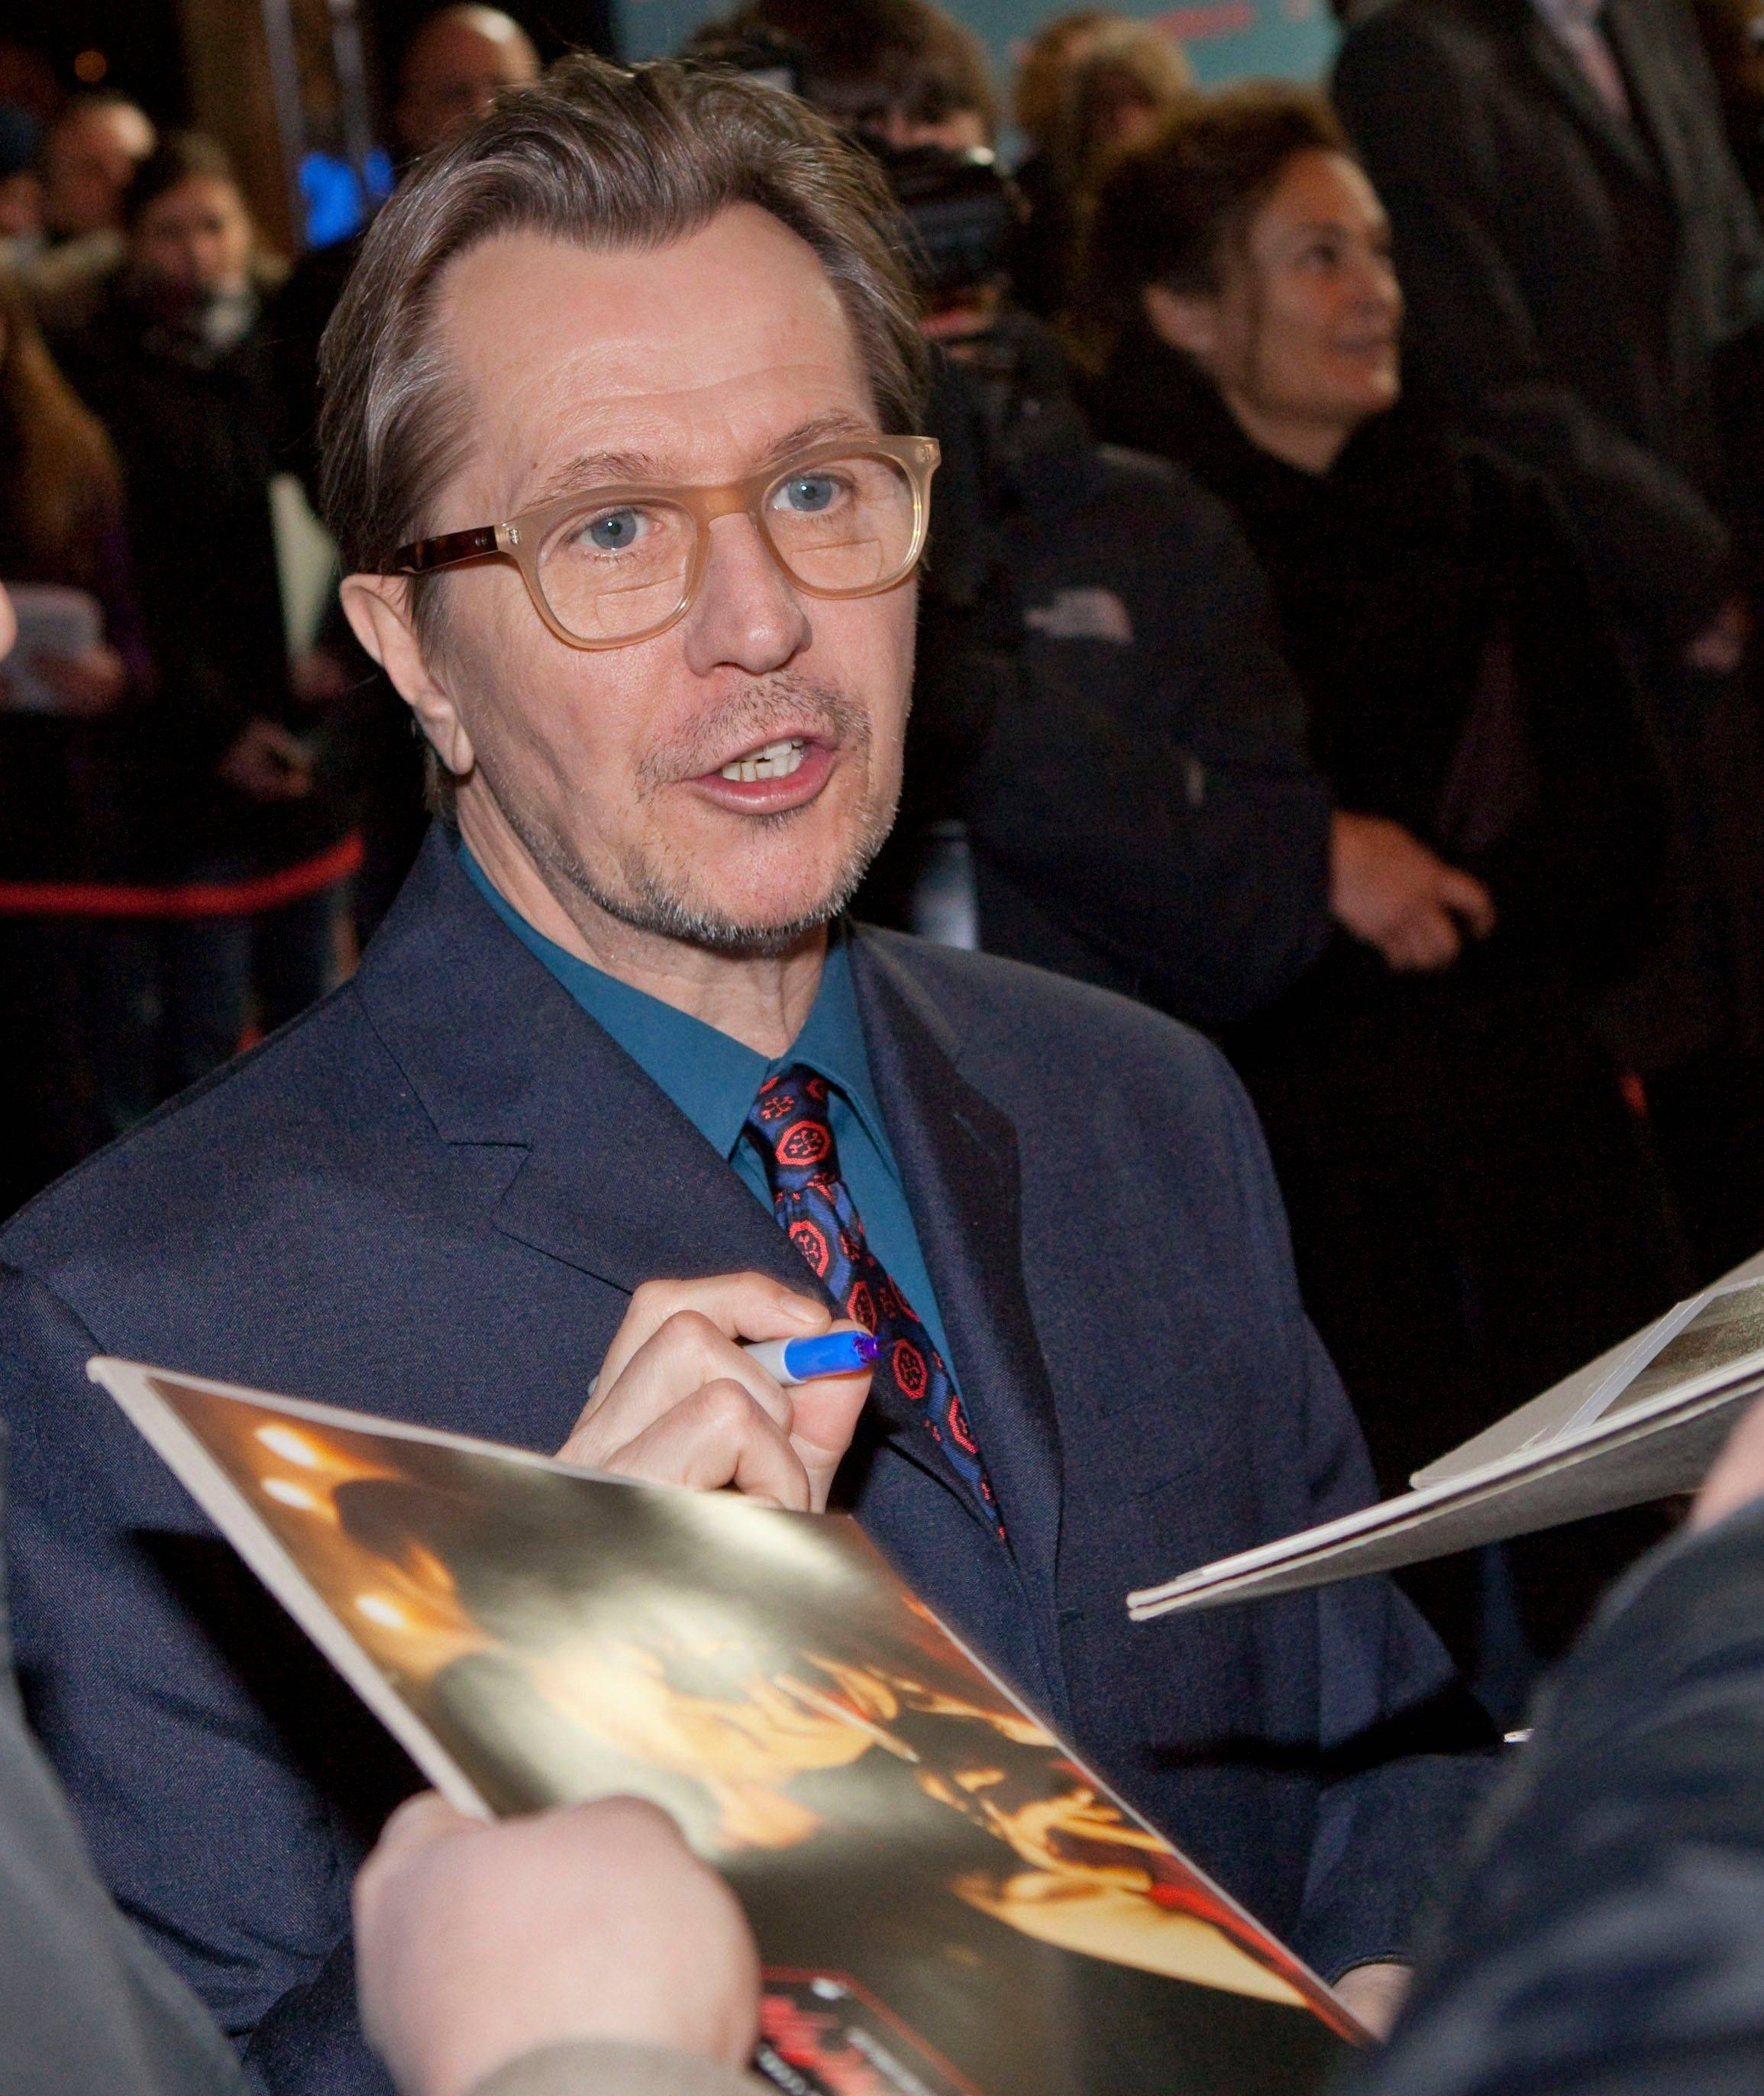 "British actor Gary Oldman signs autographs before the German premiere of the movie ""Dame, K�nig, As, Spion"" (original title ""Tinker Tailor Soldier Spy"") in Berlin, Germany, Tuesday, Jan. 24, 2012. Oldman was nominated Tuesday, Jan. 24, 2012 for an Academy Award for best actor for his role in the film."